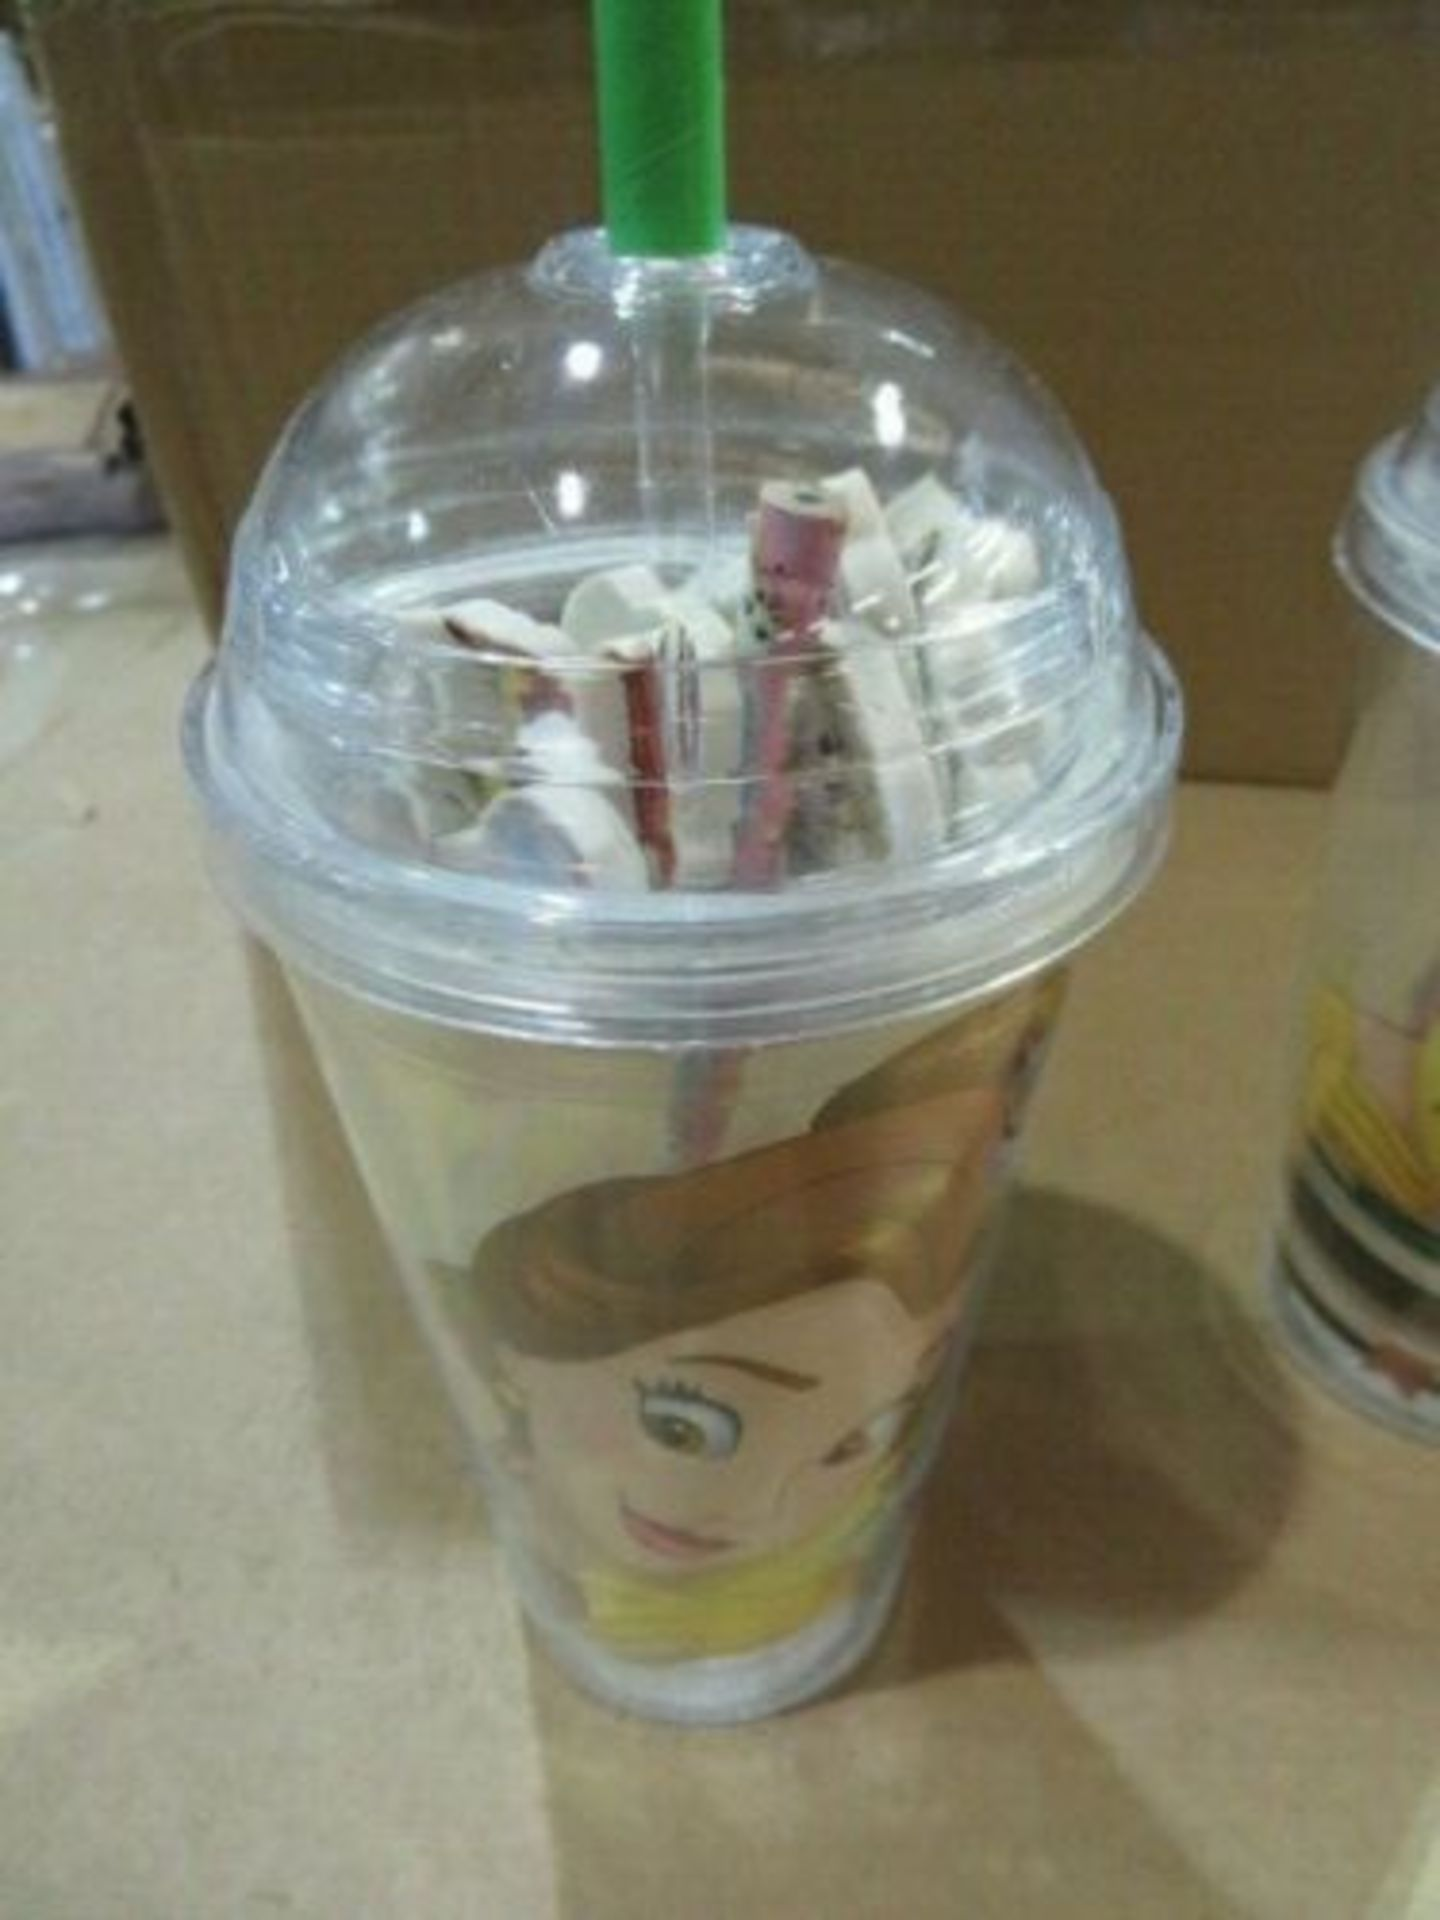 Lot 326 - WHOLESALE JOB LOT 24 X NEW DISNEY BEAUTY AND THE BEAST CUP WITH ERASERS & PENCIL. WHOLESALE JOB...